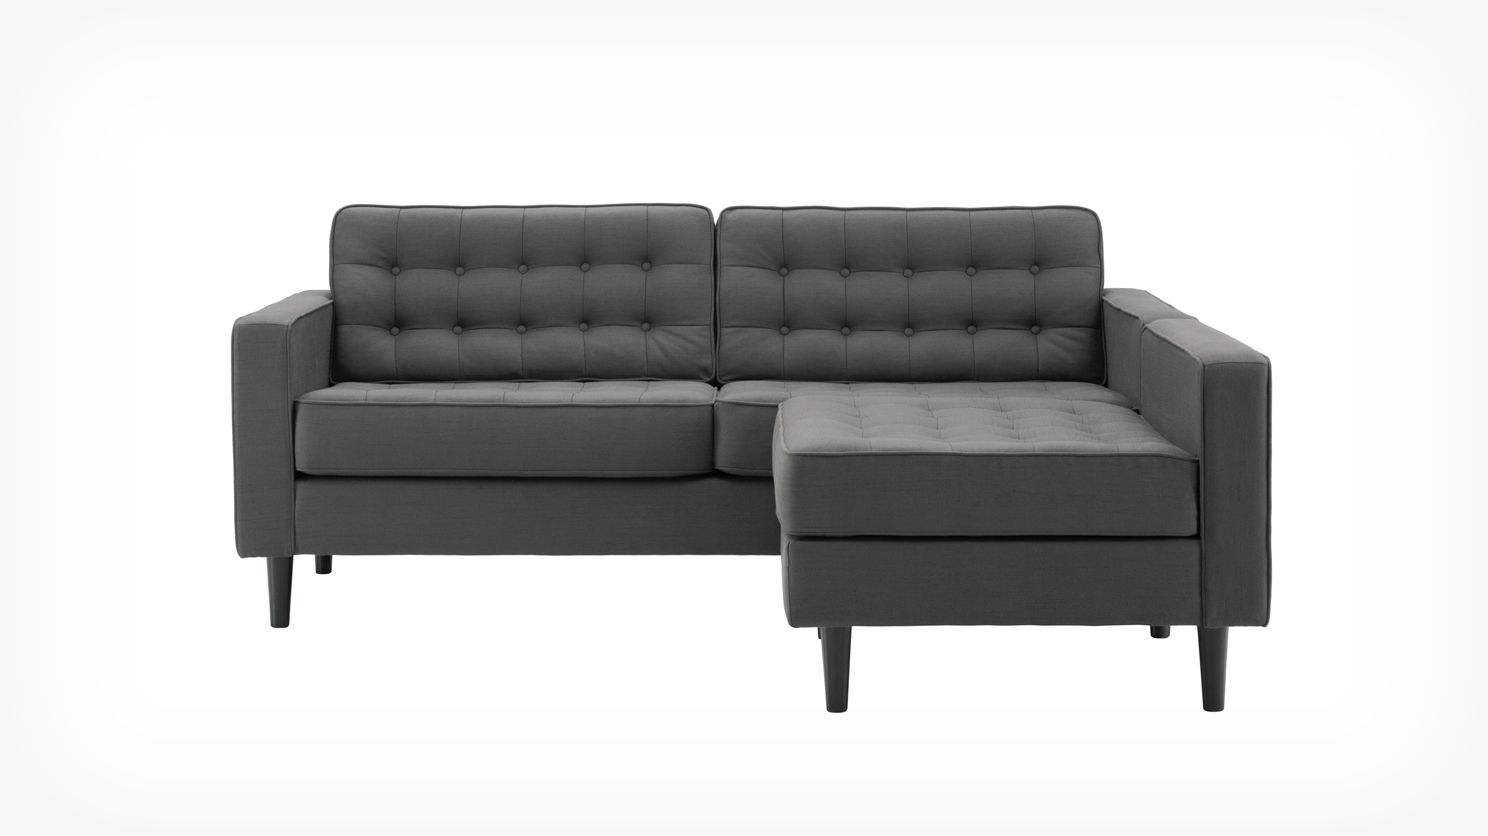 2 piece sectional sofa with chaise design homesfeed. Black Bedroom Furniture Sets. Home Design Ideas